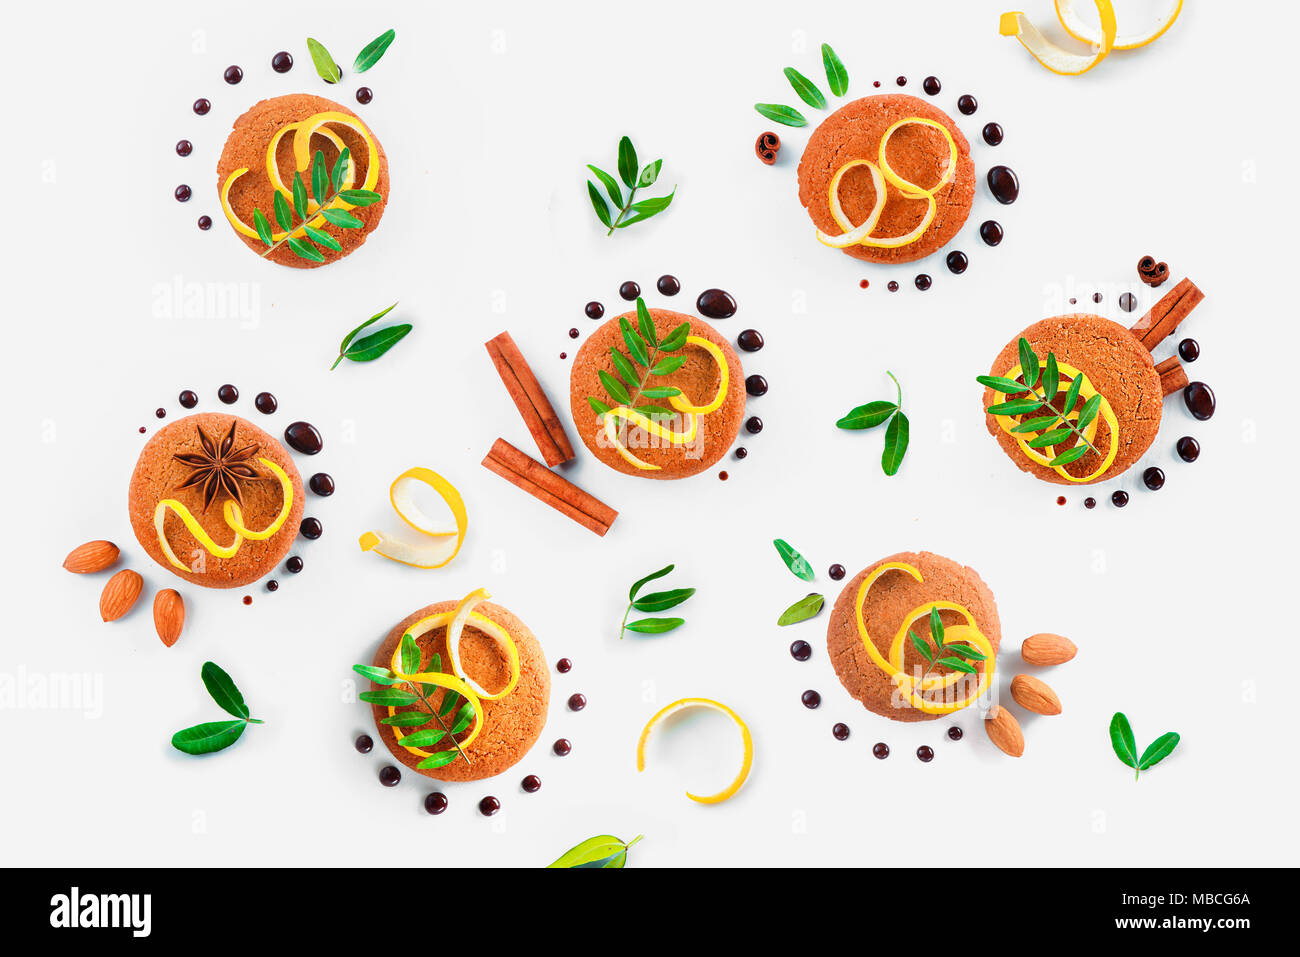 Food styling tips pattern made of cookies, chocolate swooshes and rings, cinnamon, lemon zest and green leaves. Cookie decoration concept - Stock Image